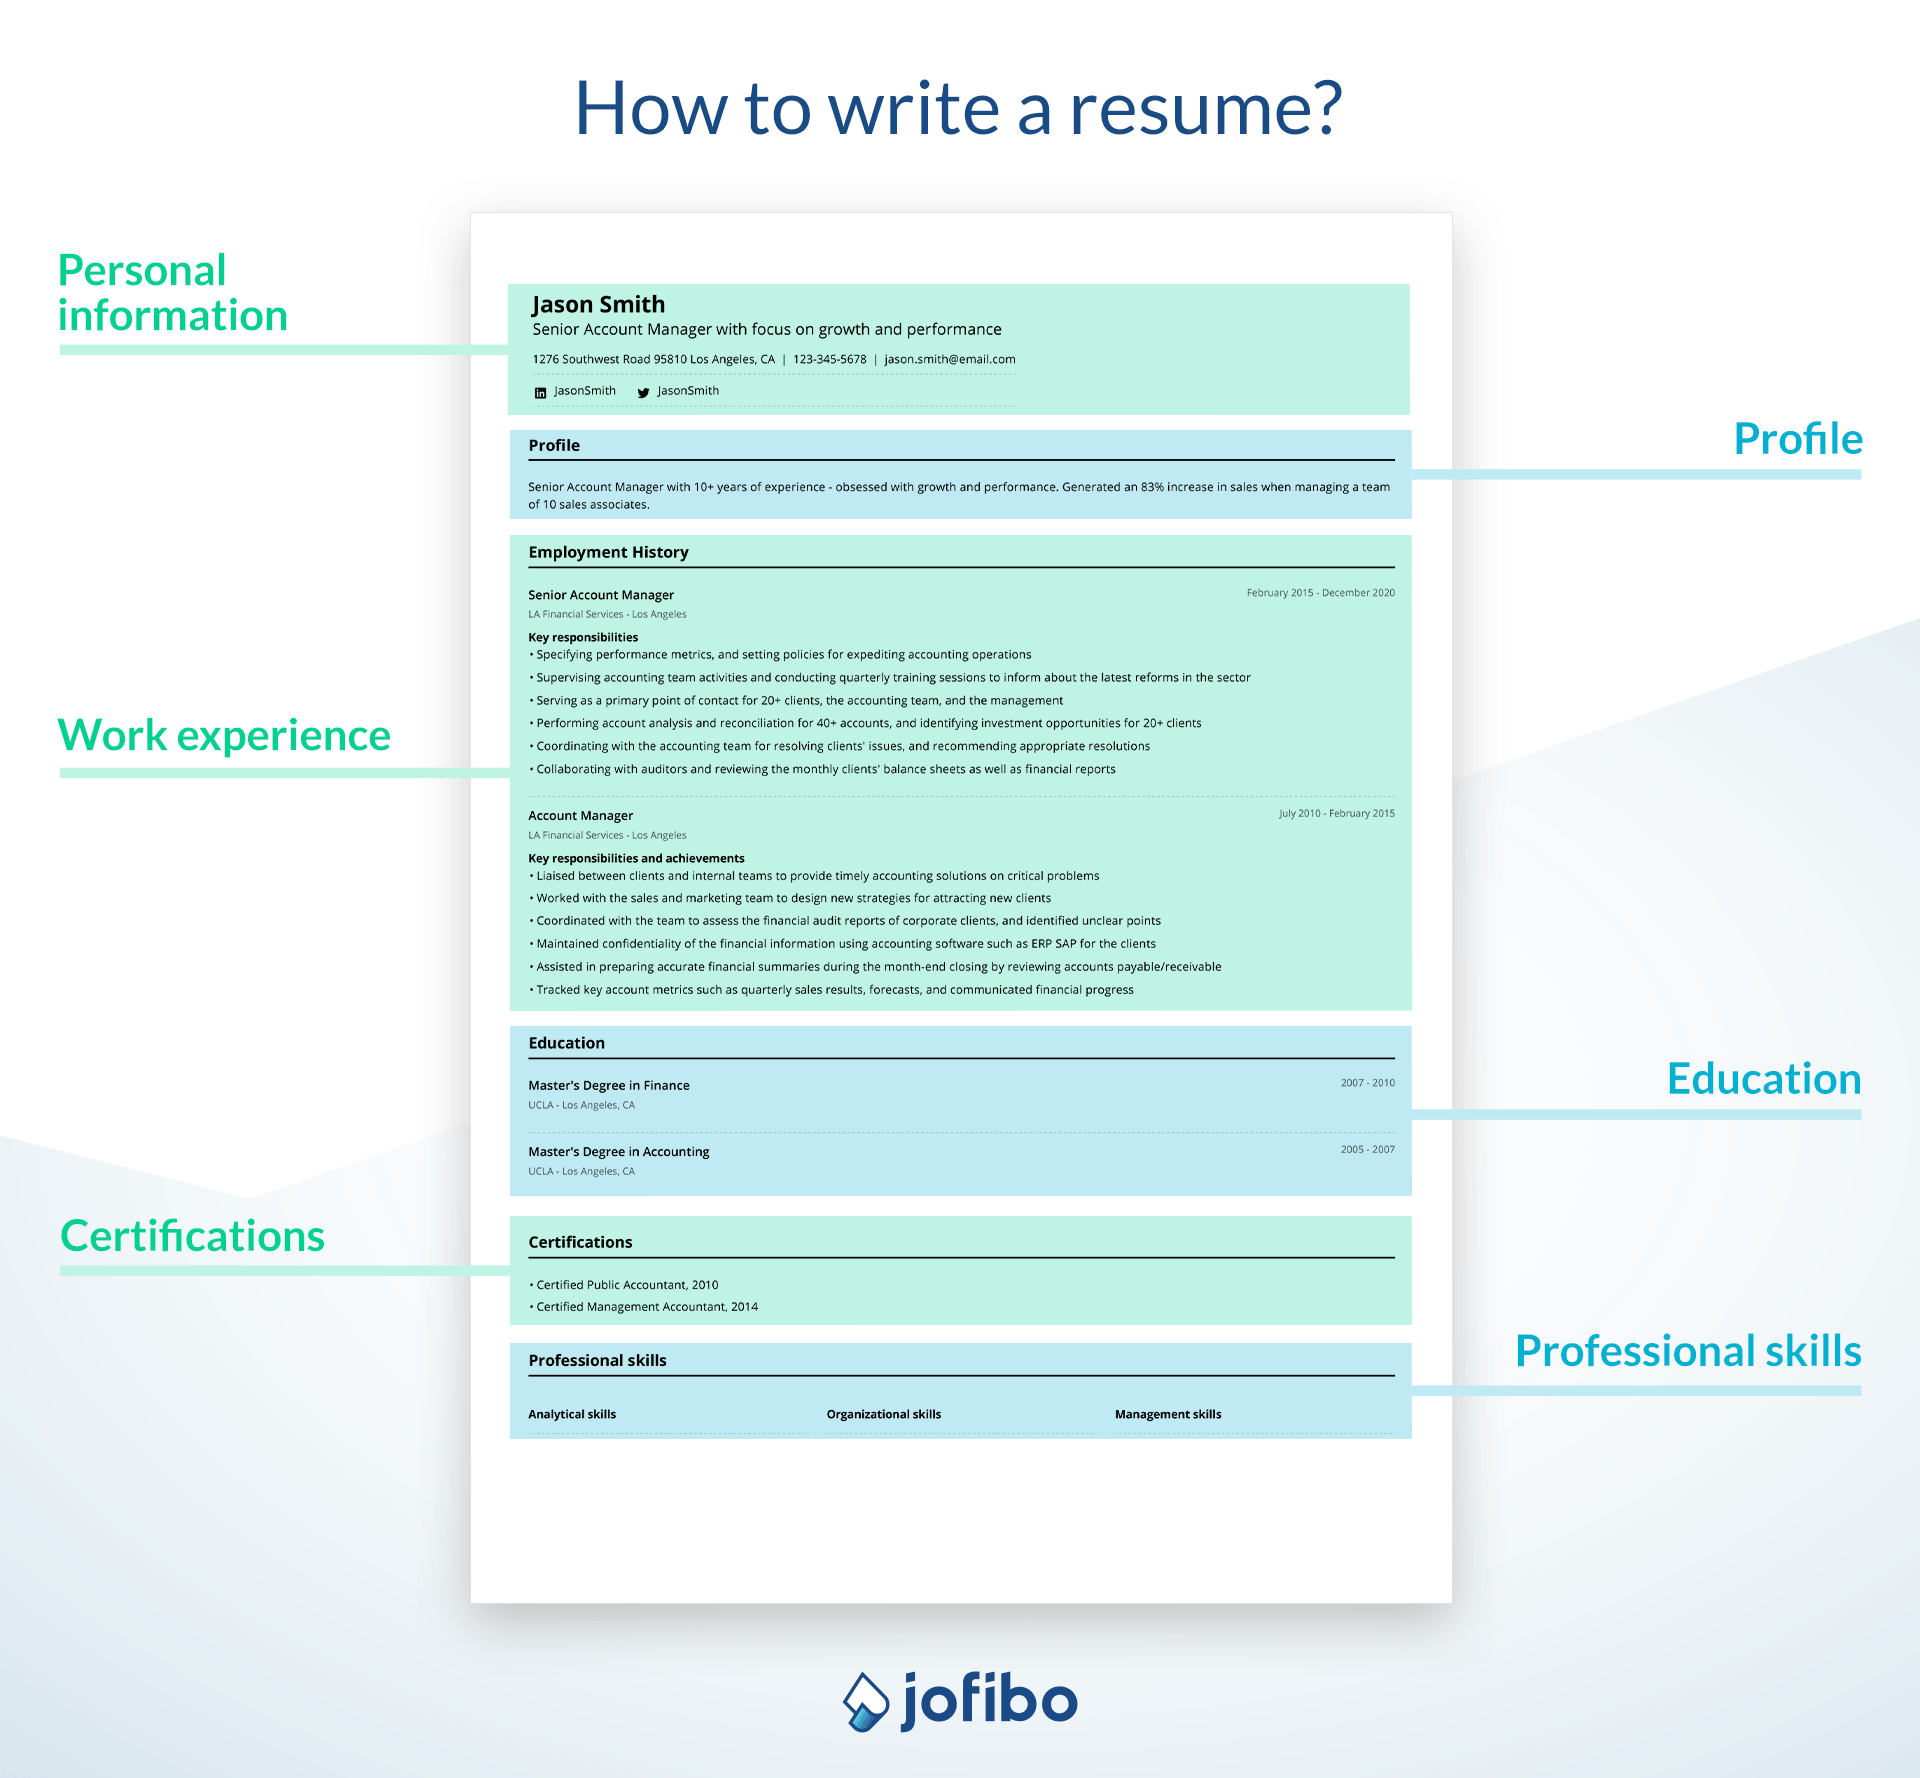 Image of a resume with indication of the different sections